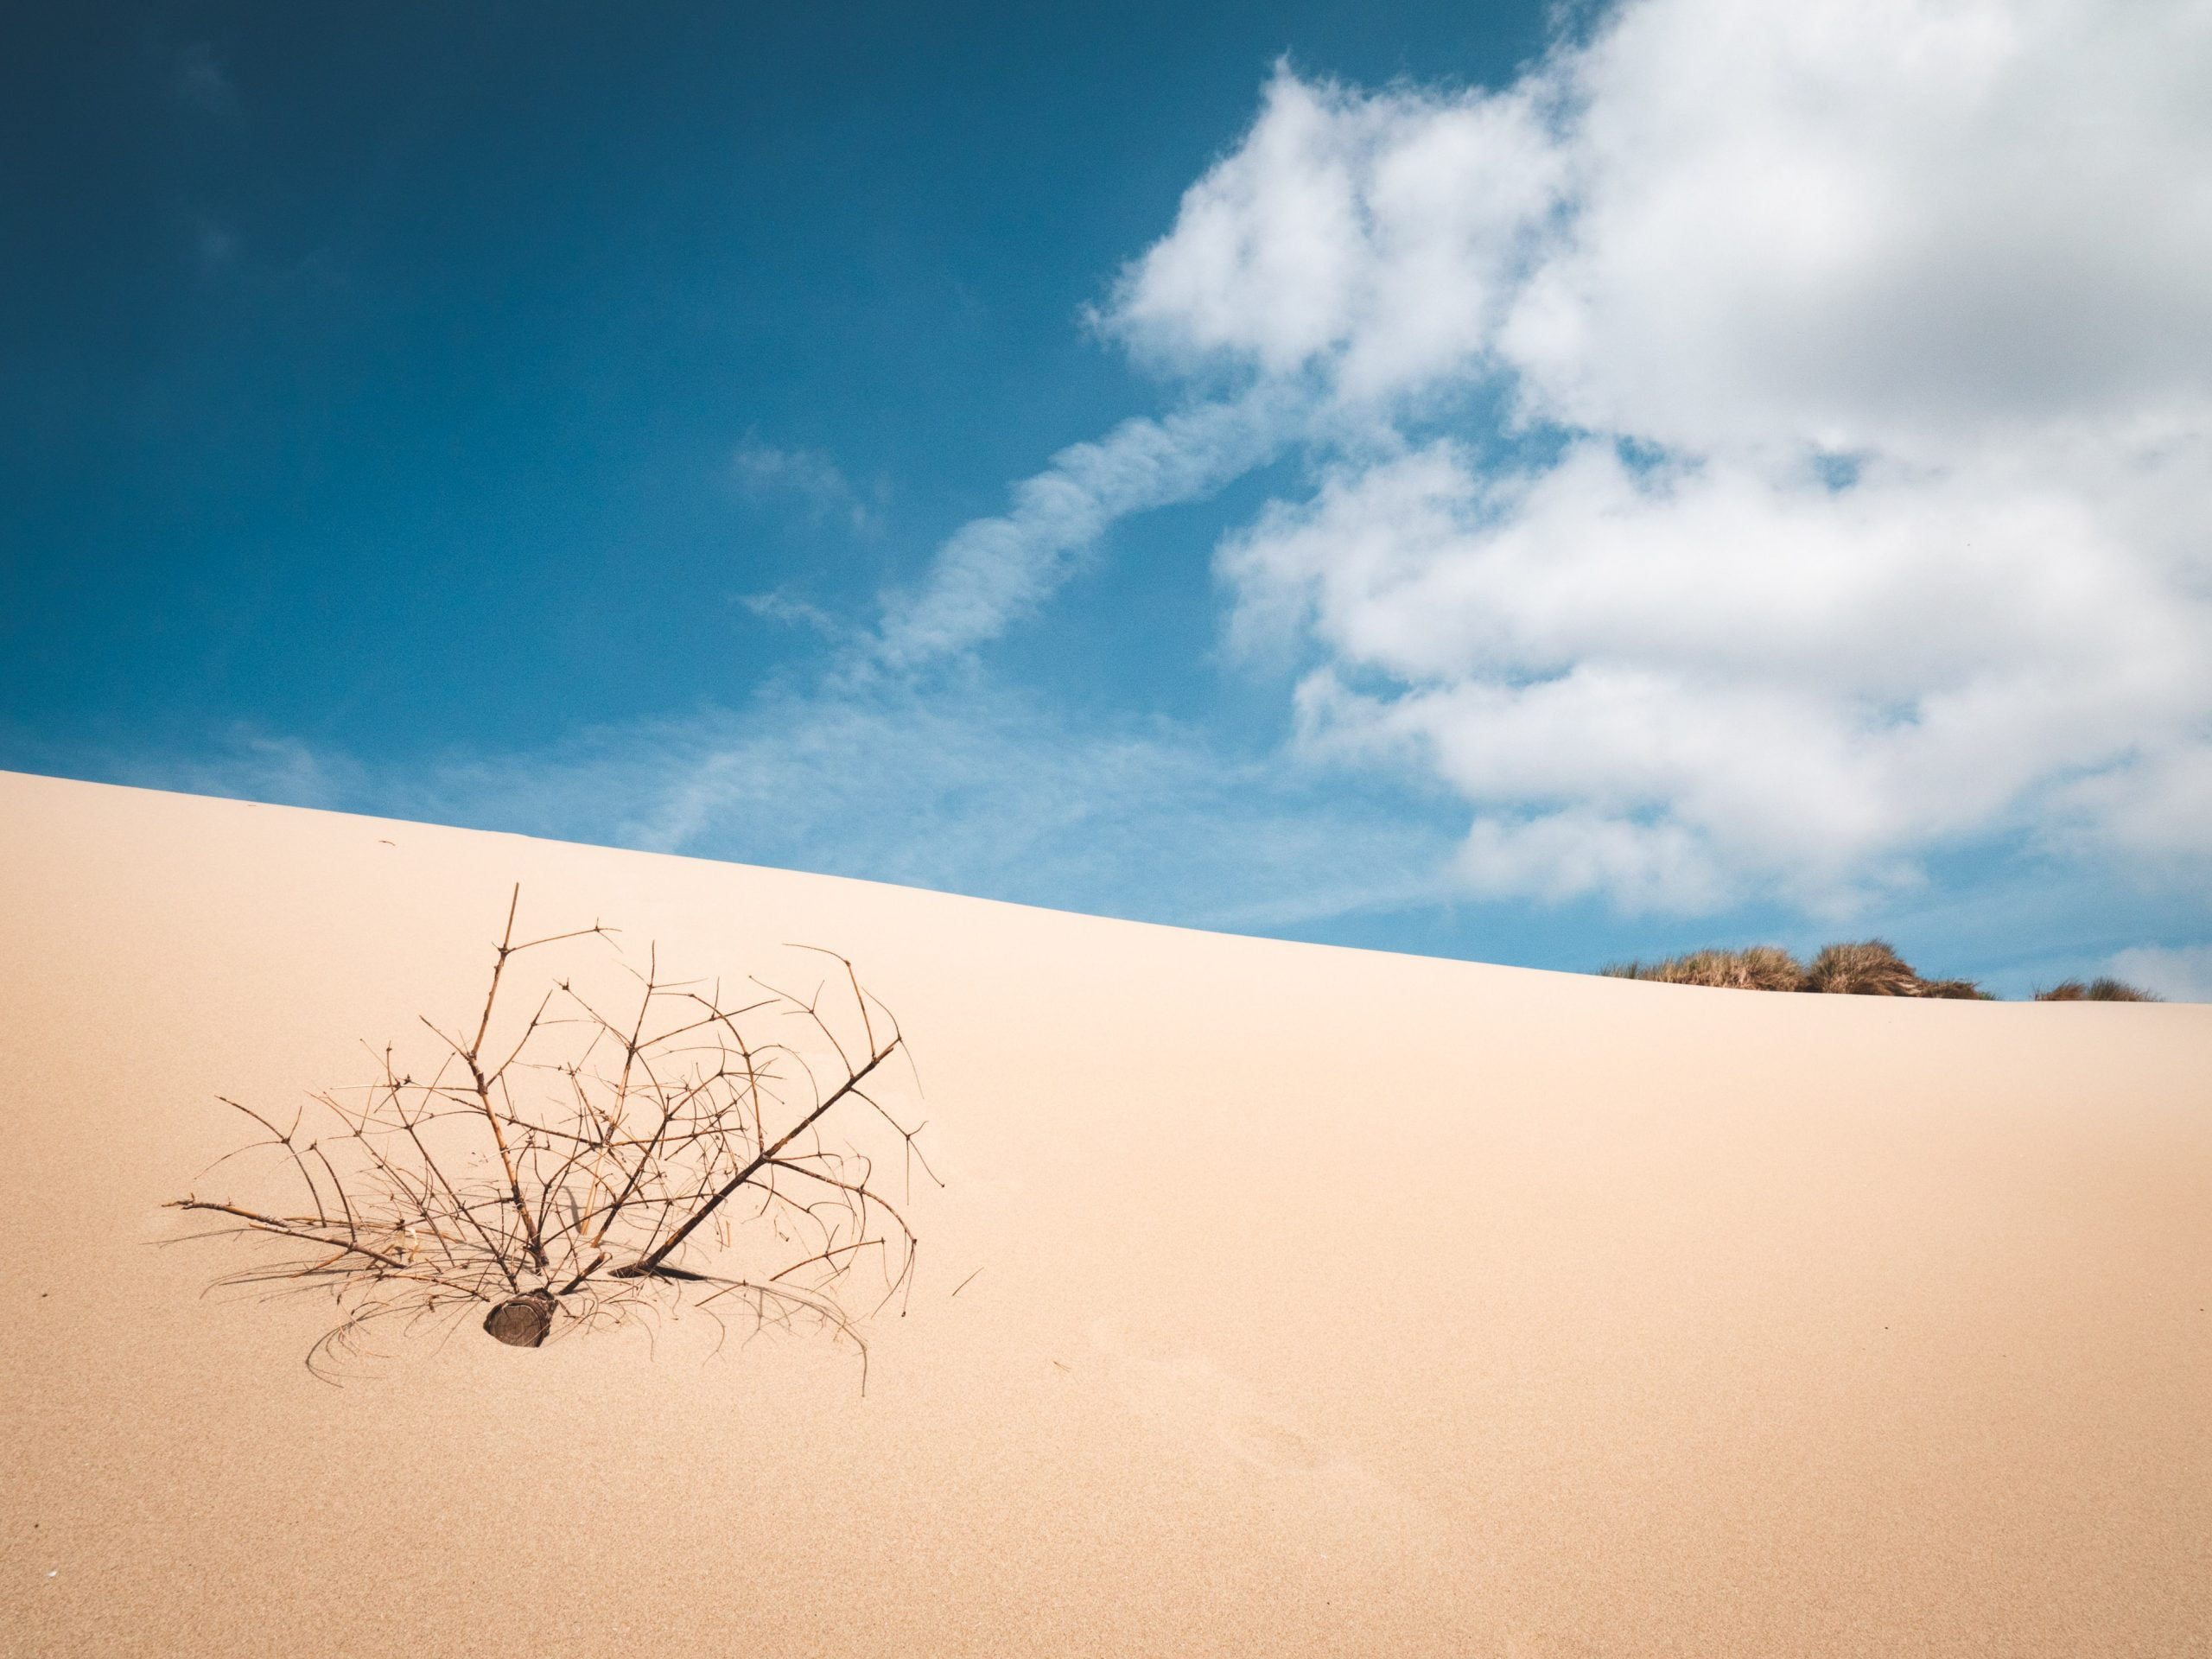 somme dune branche scaled - Les globe blogueurs - blog voyage nature